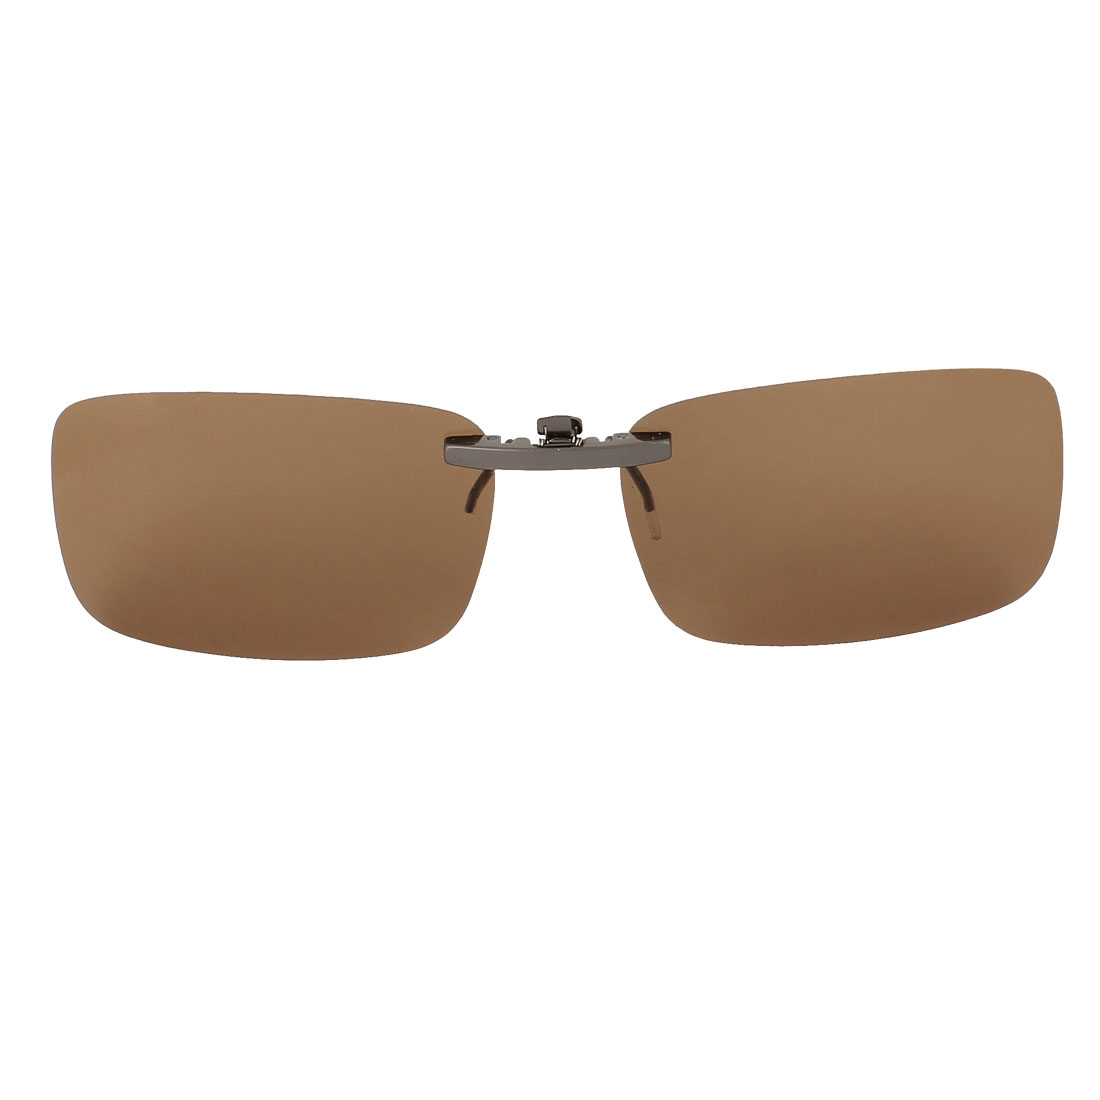 Outdoor Hiking Travel Lens Rimless Clip On Polarized Sunglasses Glasses Eyewear Brown